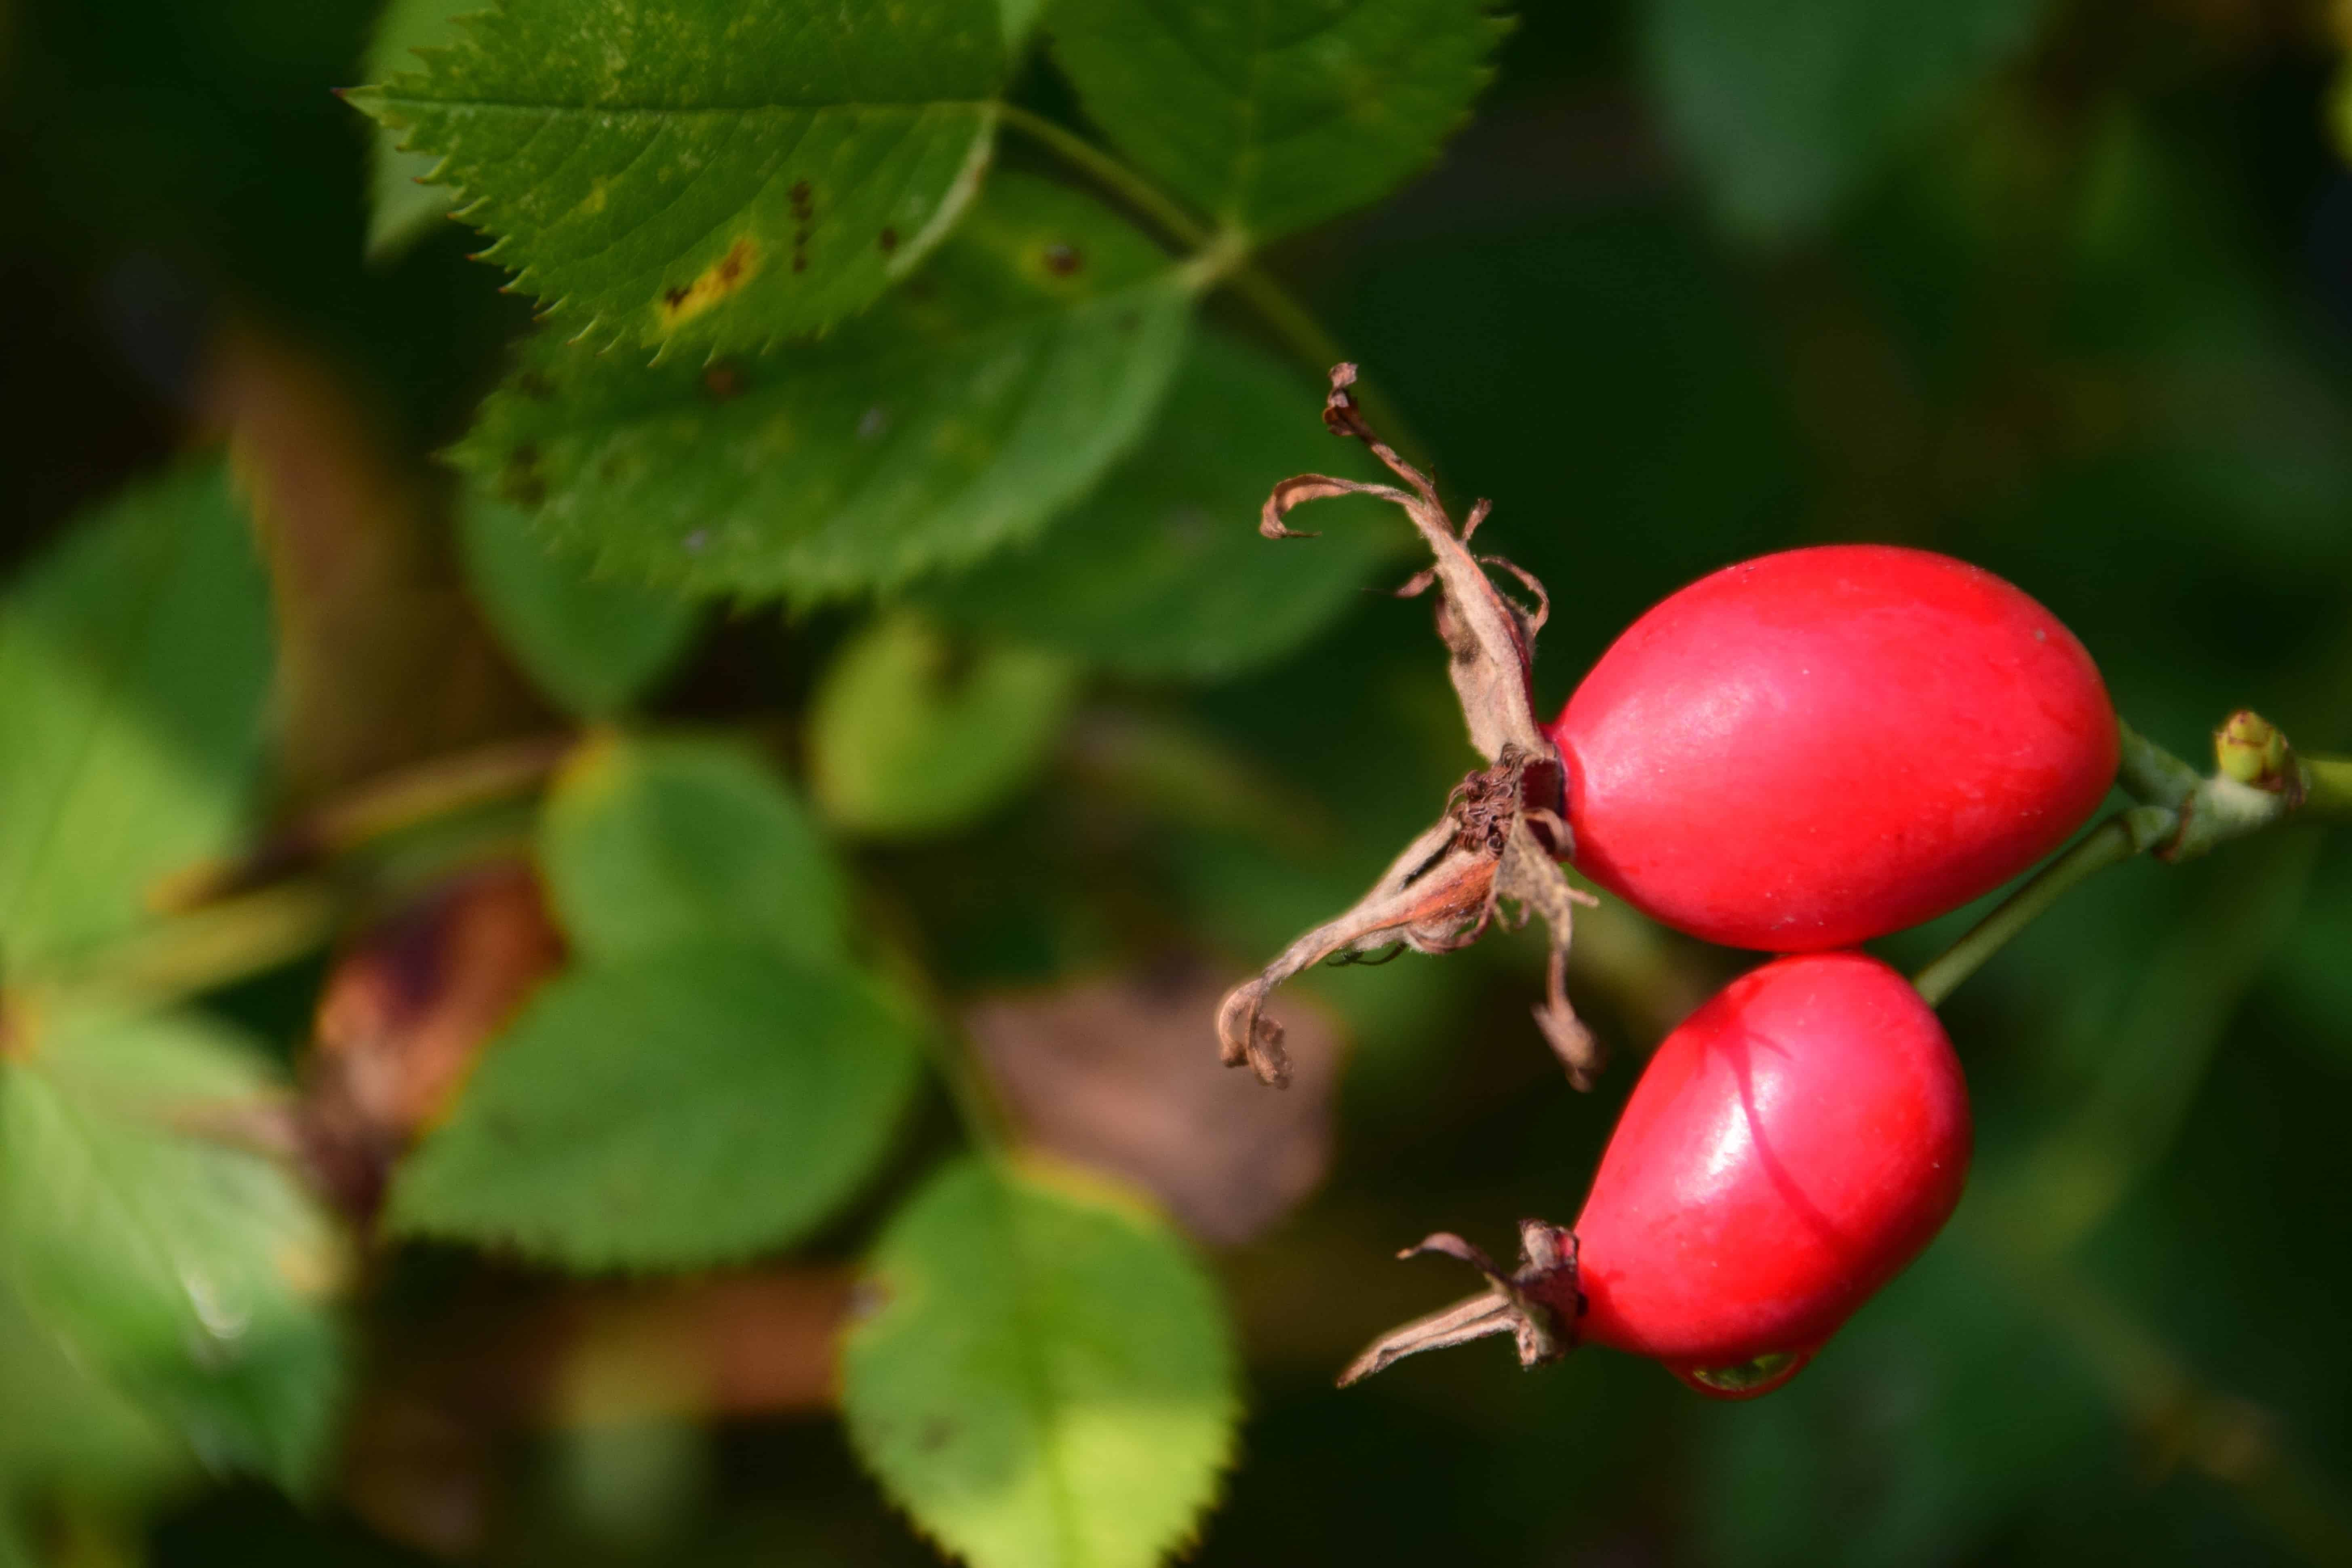 Image Libre Rose Musquee Berry Fruits Foret Feuille Plante